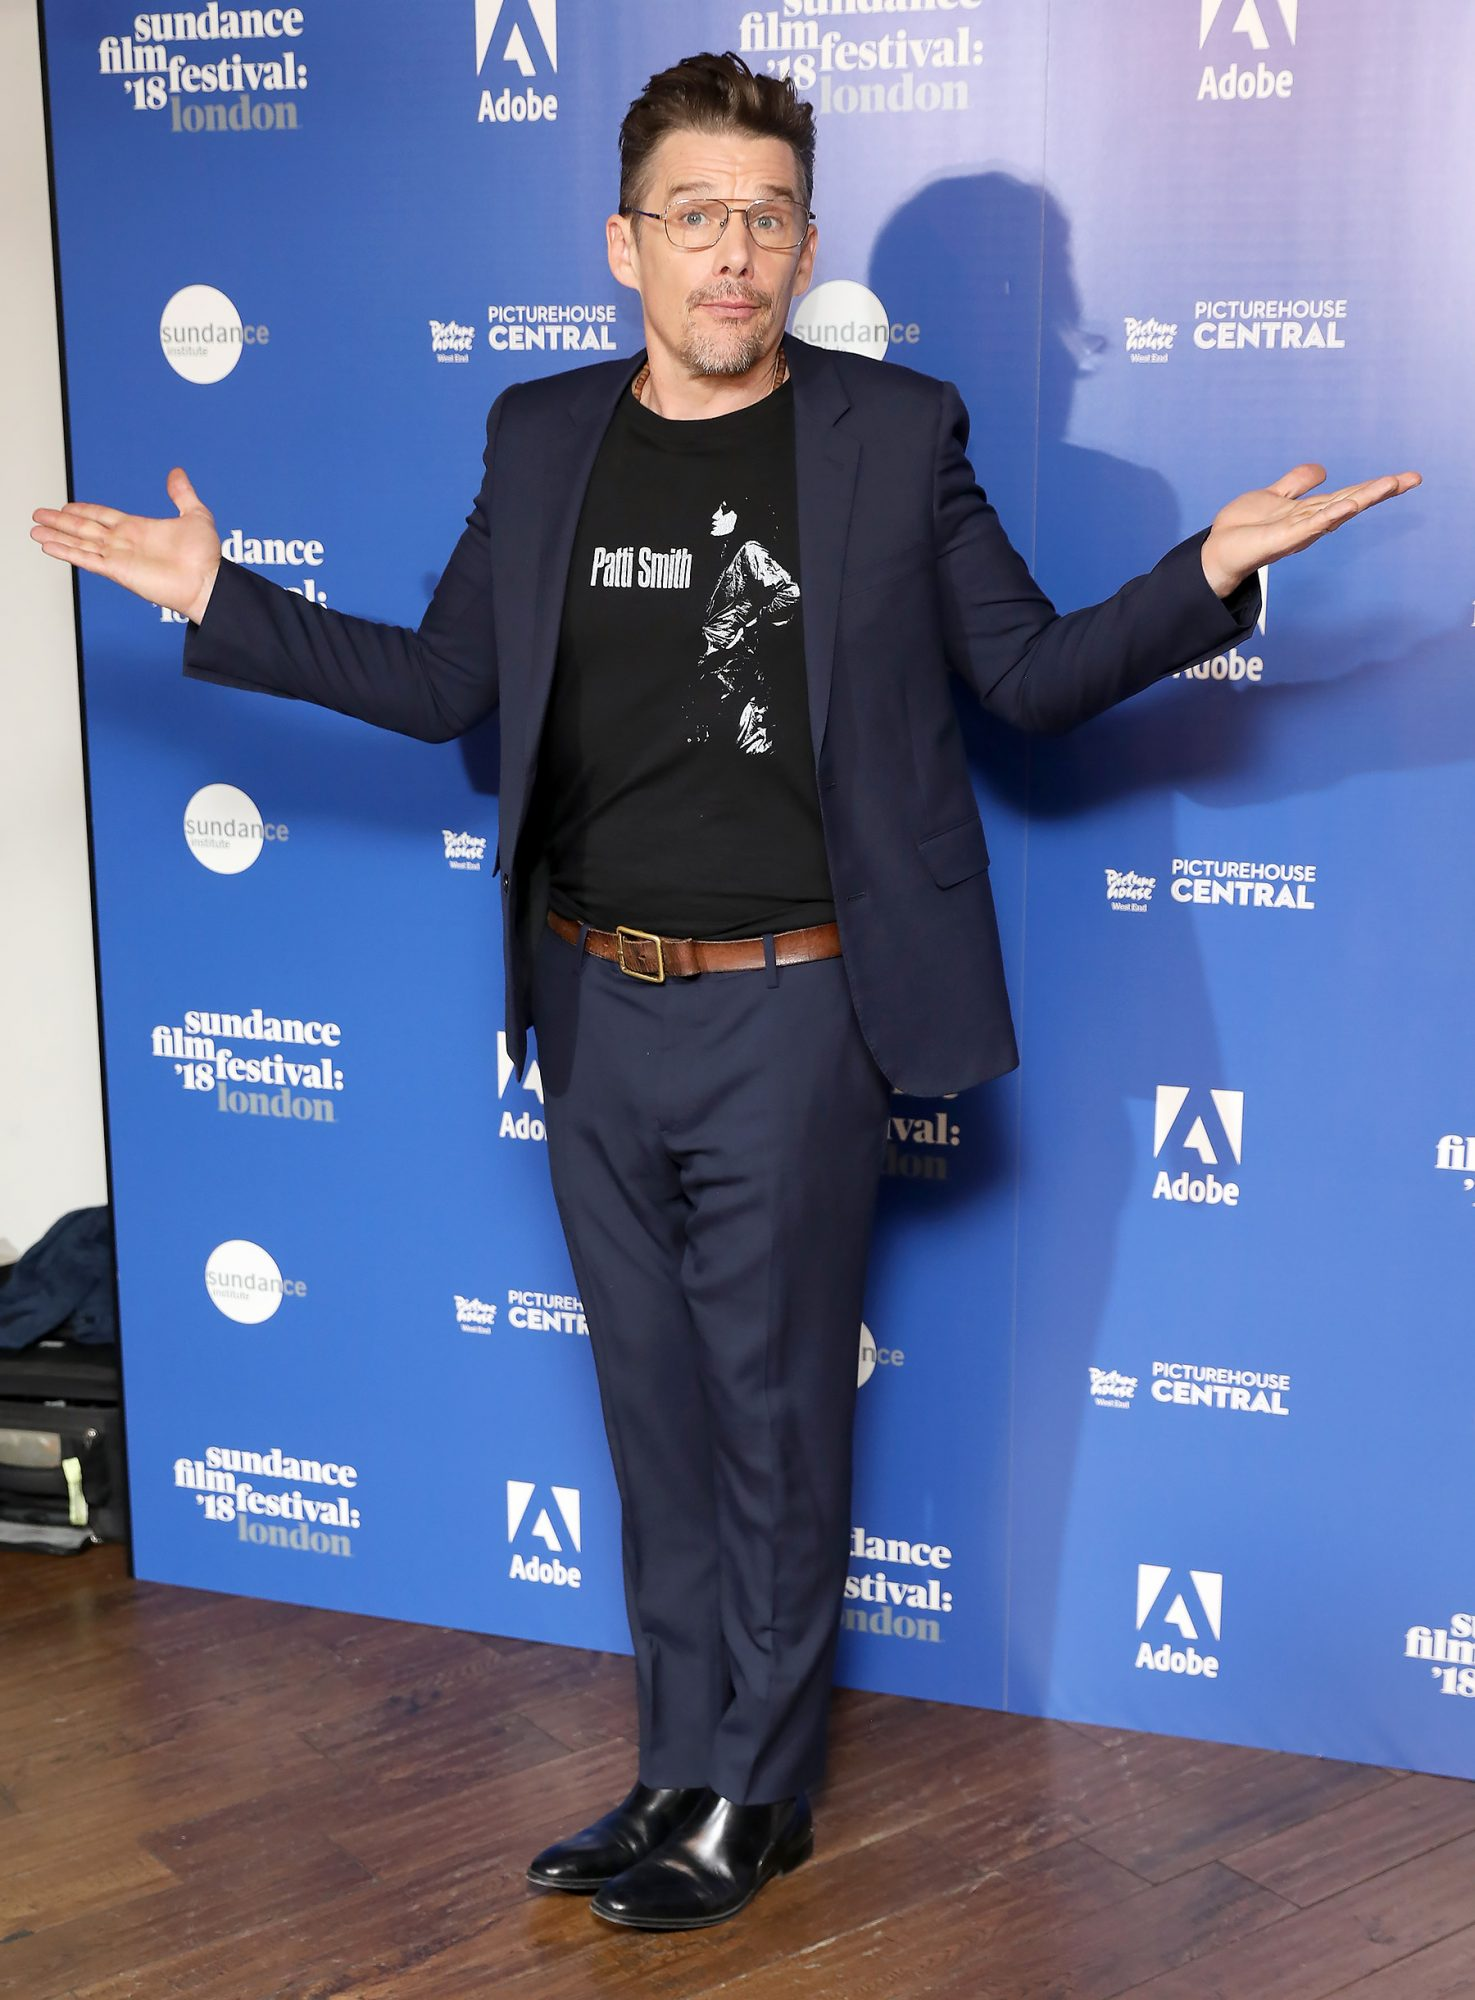 Sundance Film Festival: 'First Reformed' Red Carpet Arrivals